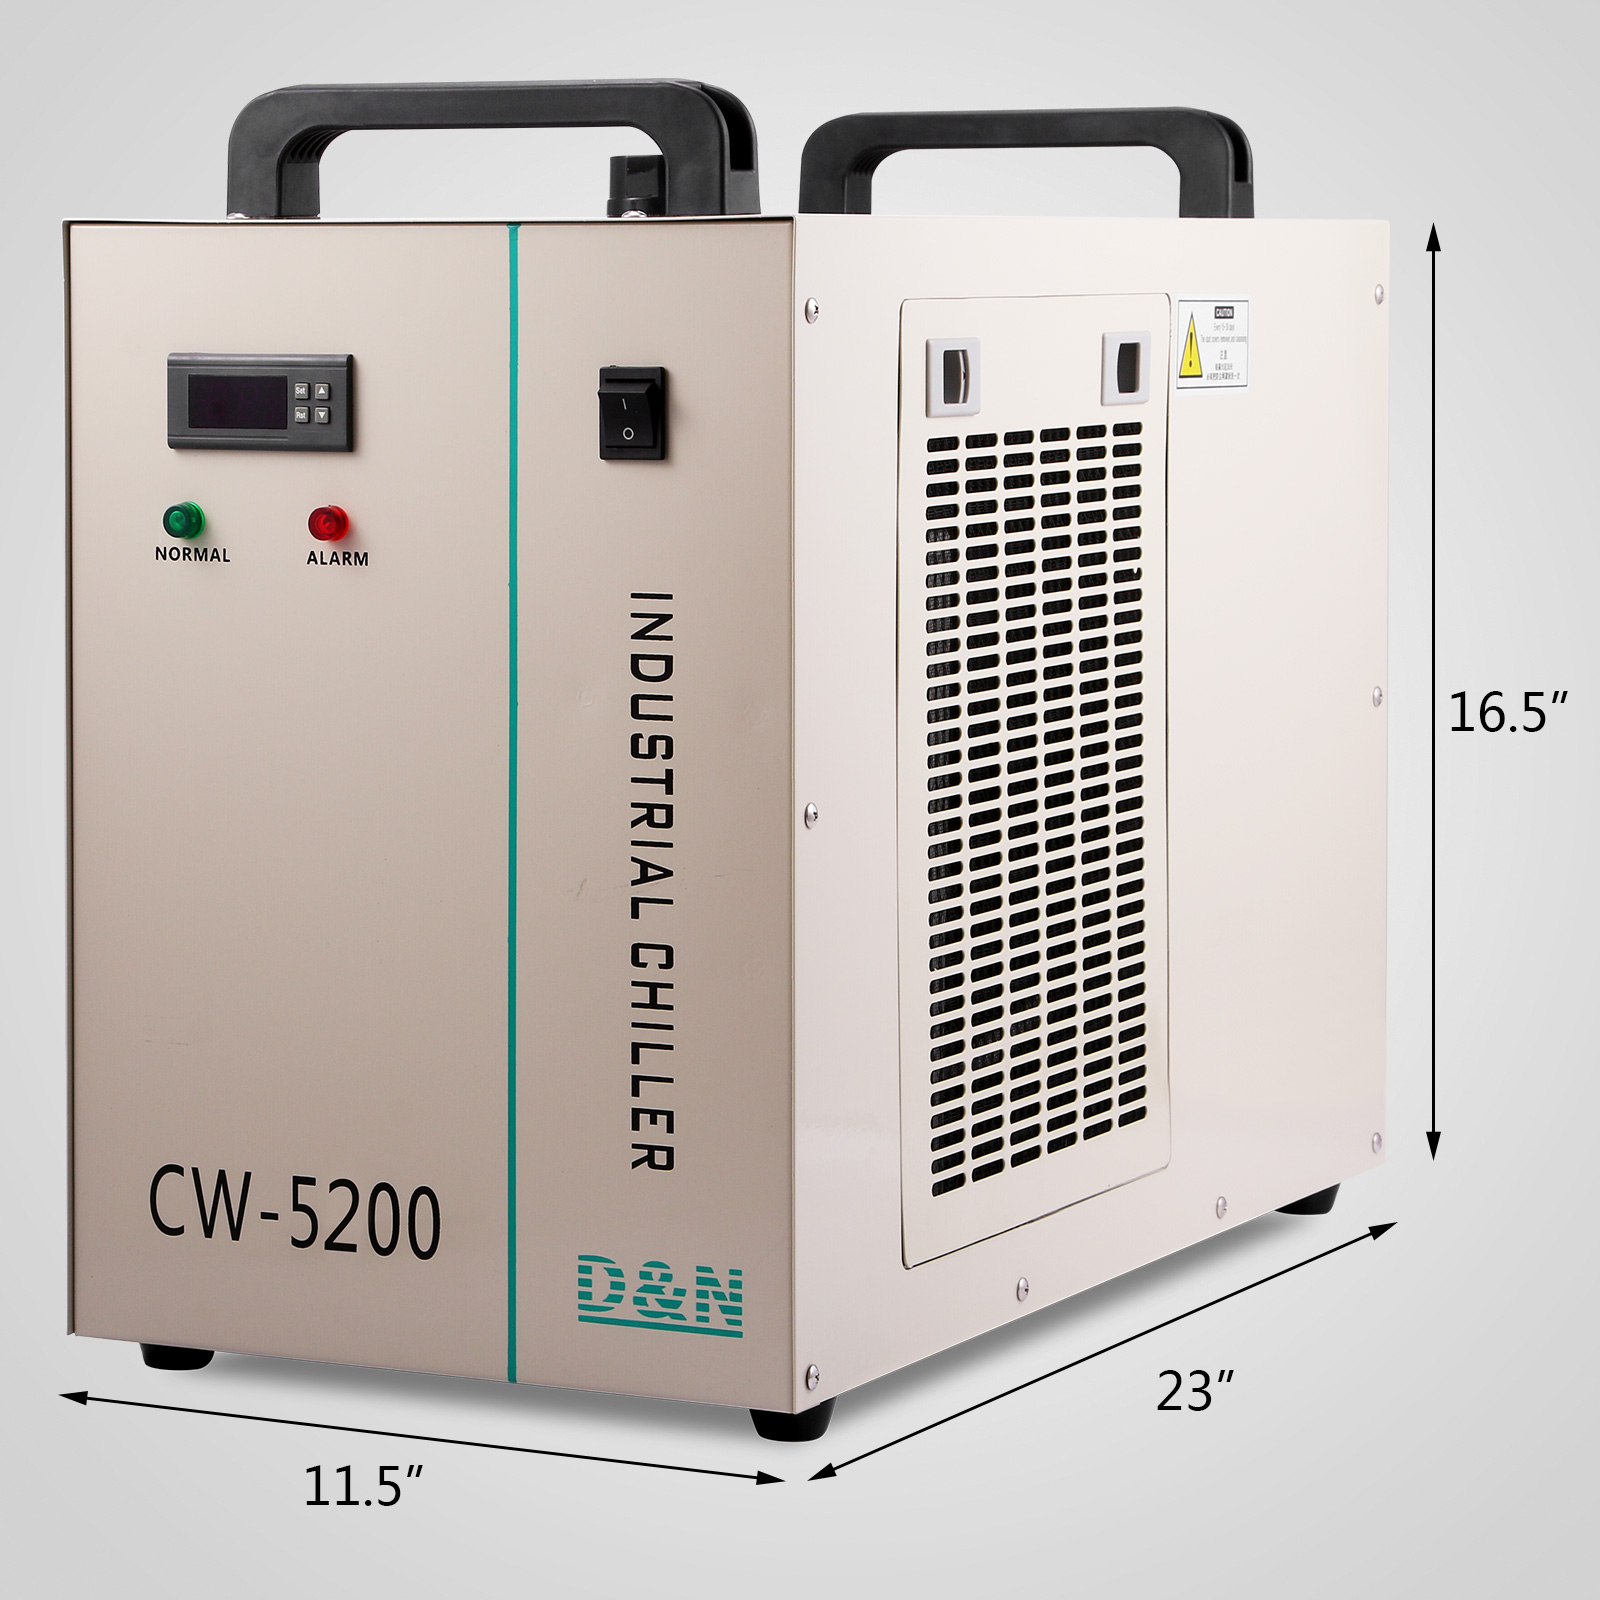 CW 5200DG INDUSTRIAL WATER CHILLER CNC LASER LASER EQUIPMENT SPINDLE  #248178